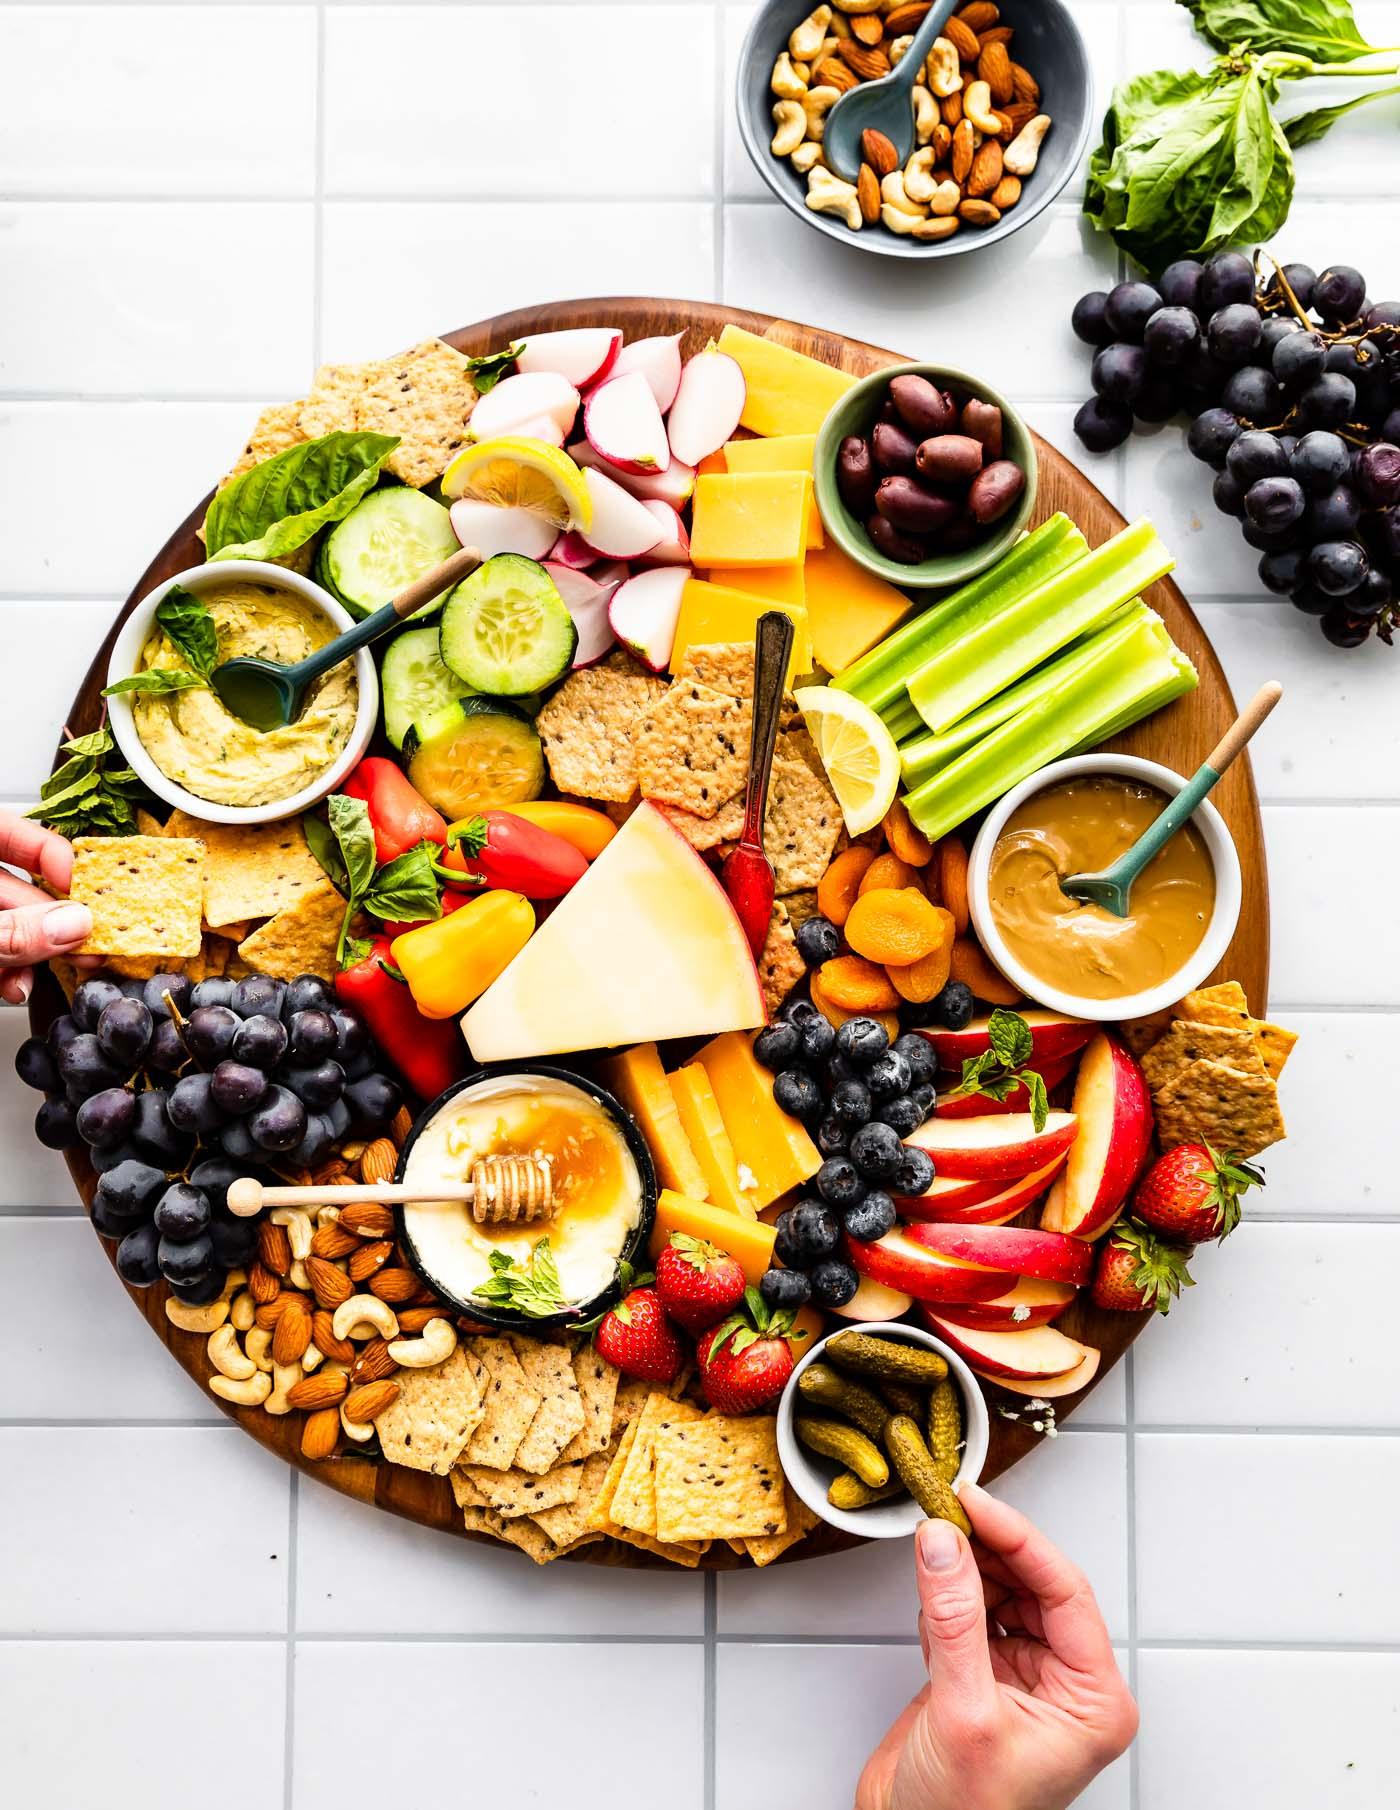 Overhead image of serving platter with crackers, vegetables, fruits, nuts, cheese, and dip.